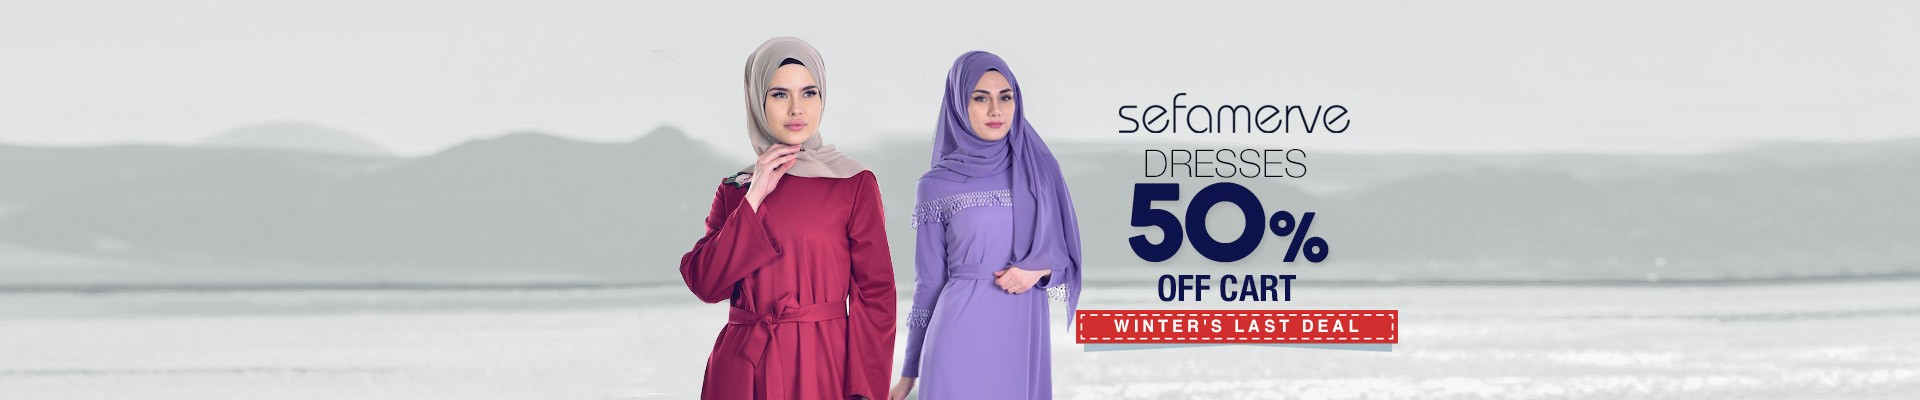 %50 Discount of Cart on Dresses